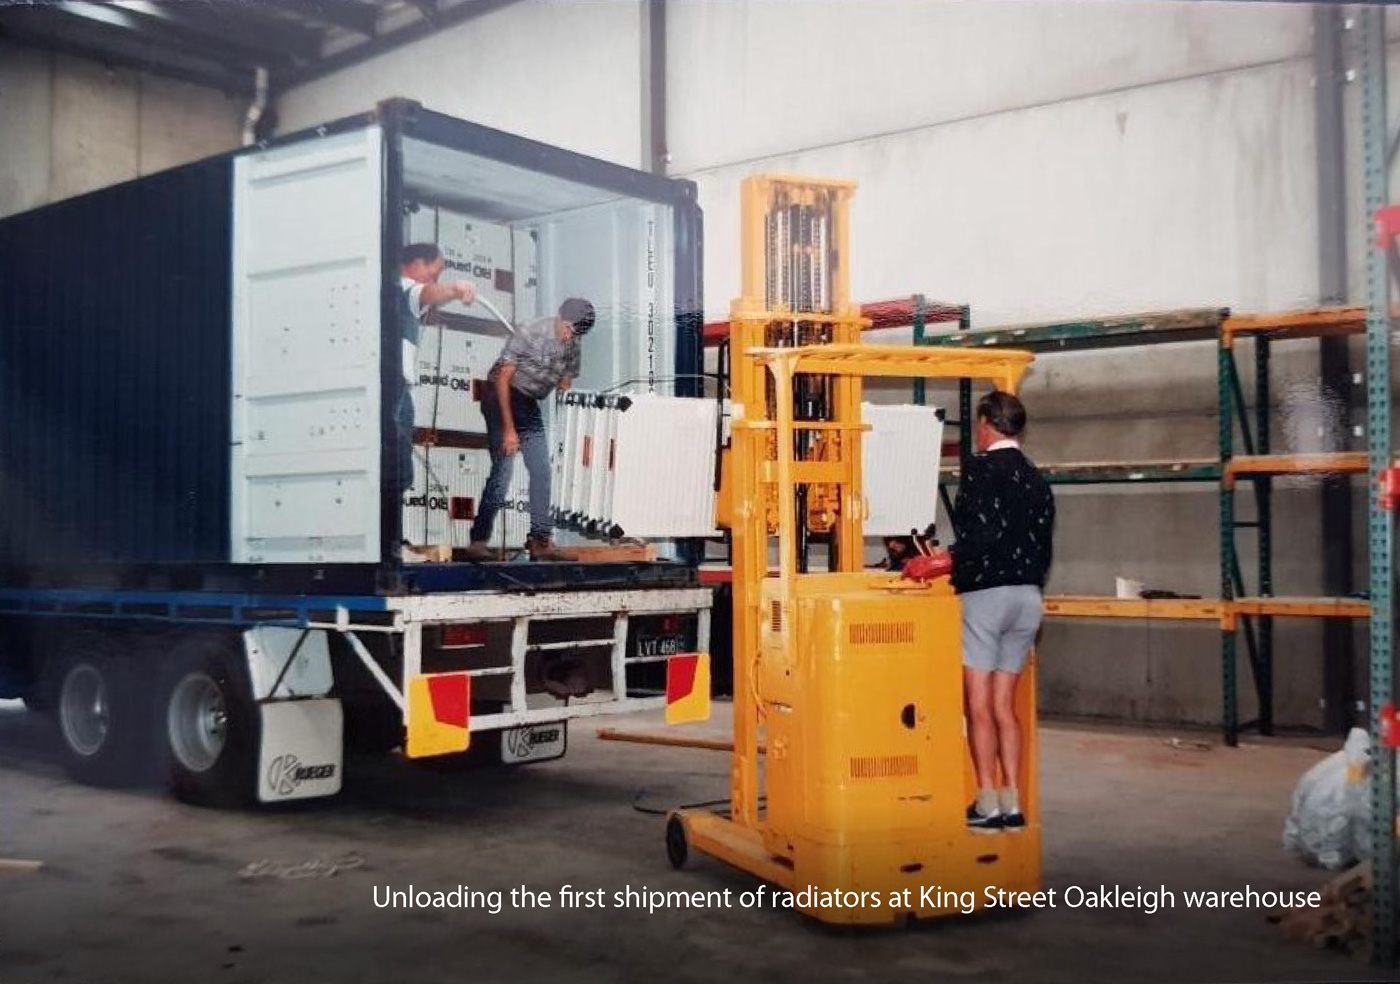 Uploading the first shipment of radiators at King Street Oakleigh warehouse